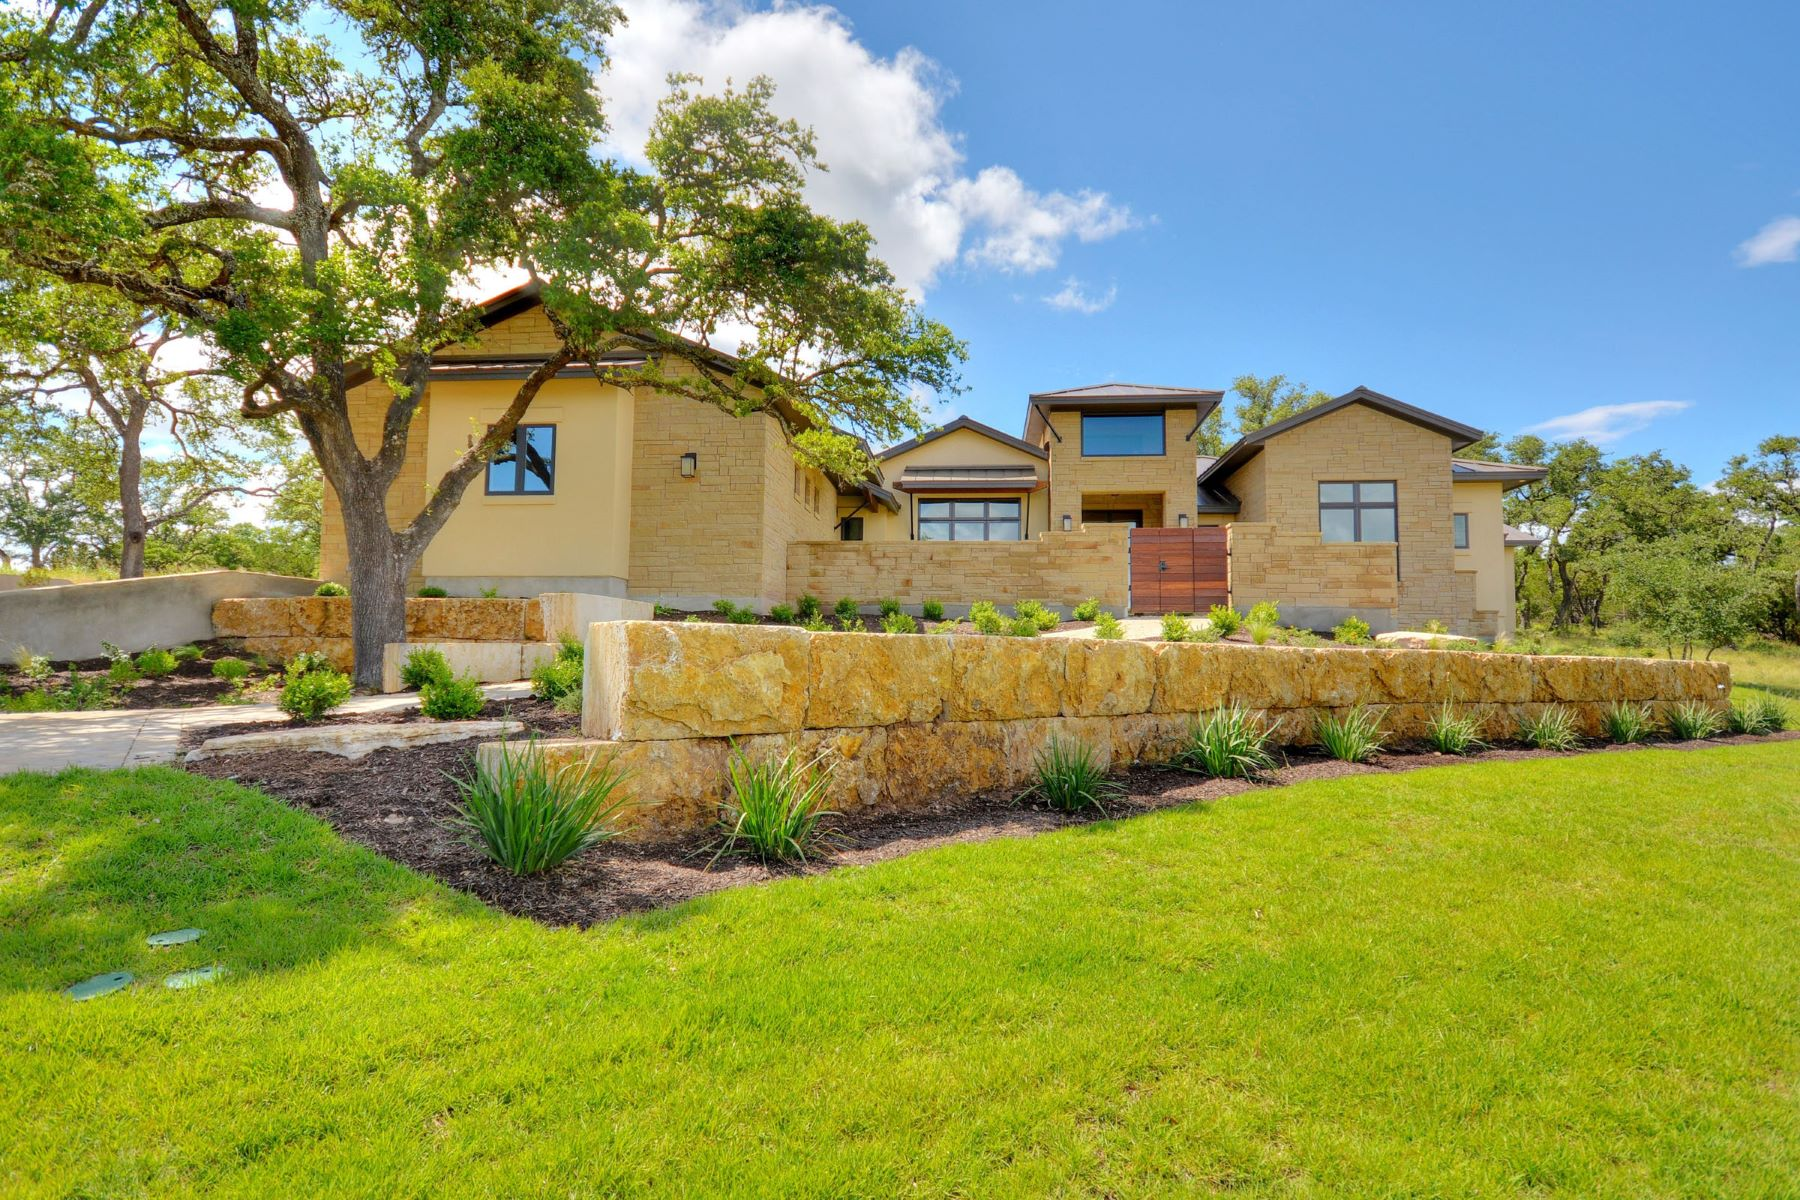 Single Family Home for Sale at Hill Country Contemporary 18309 Flagler Dr Austin, Texas, 78738 United States